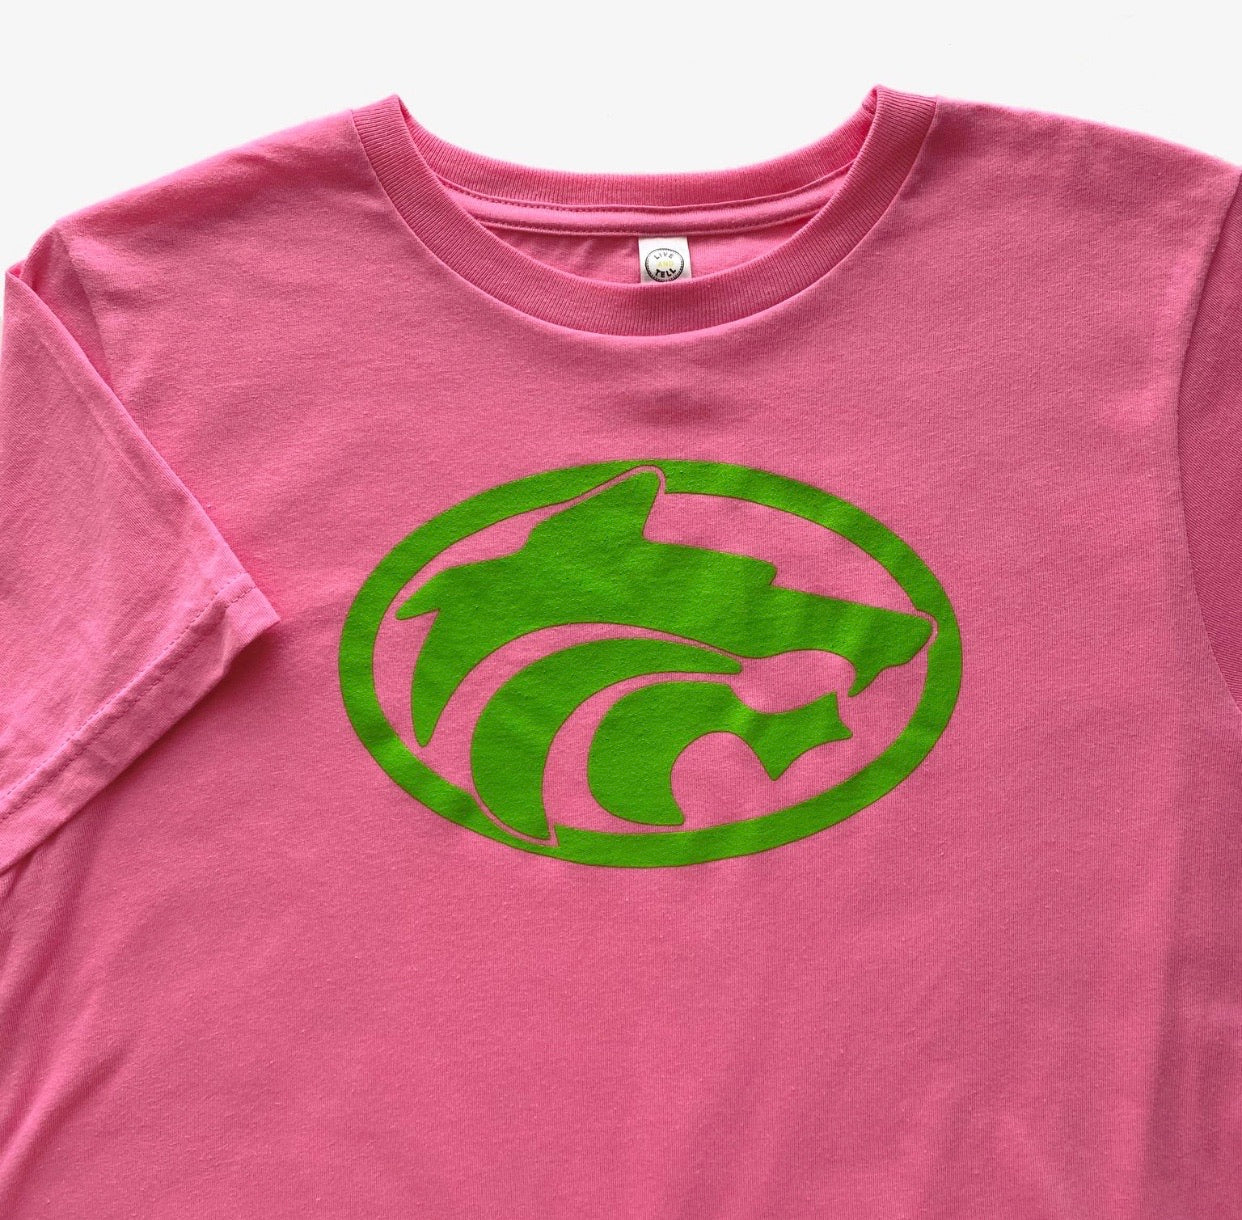 Buford  Wolves Short Sleeve Pink T-shirt Youth